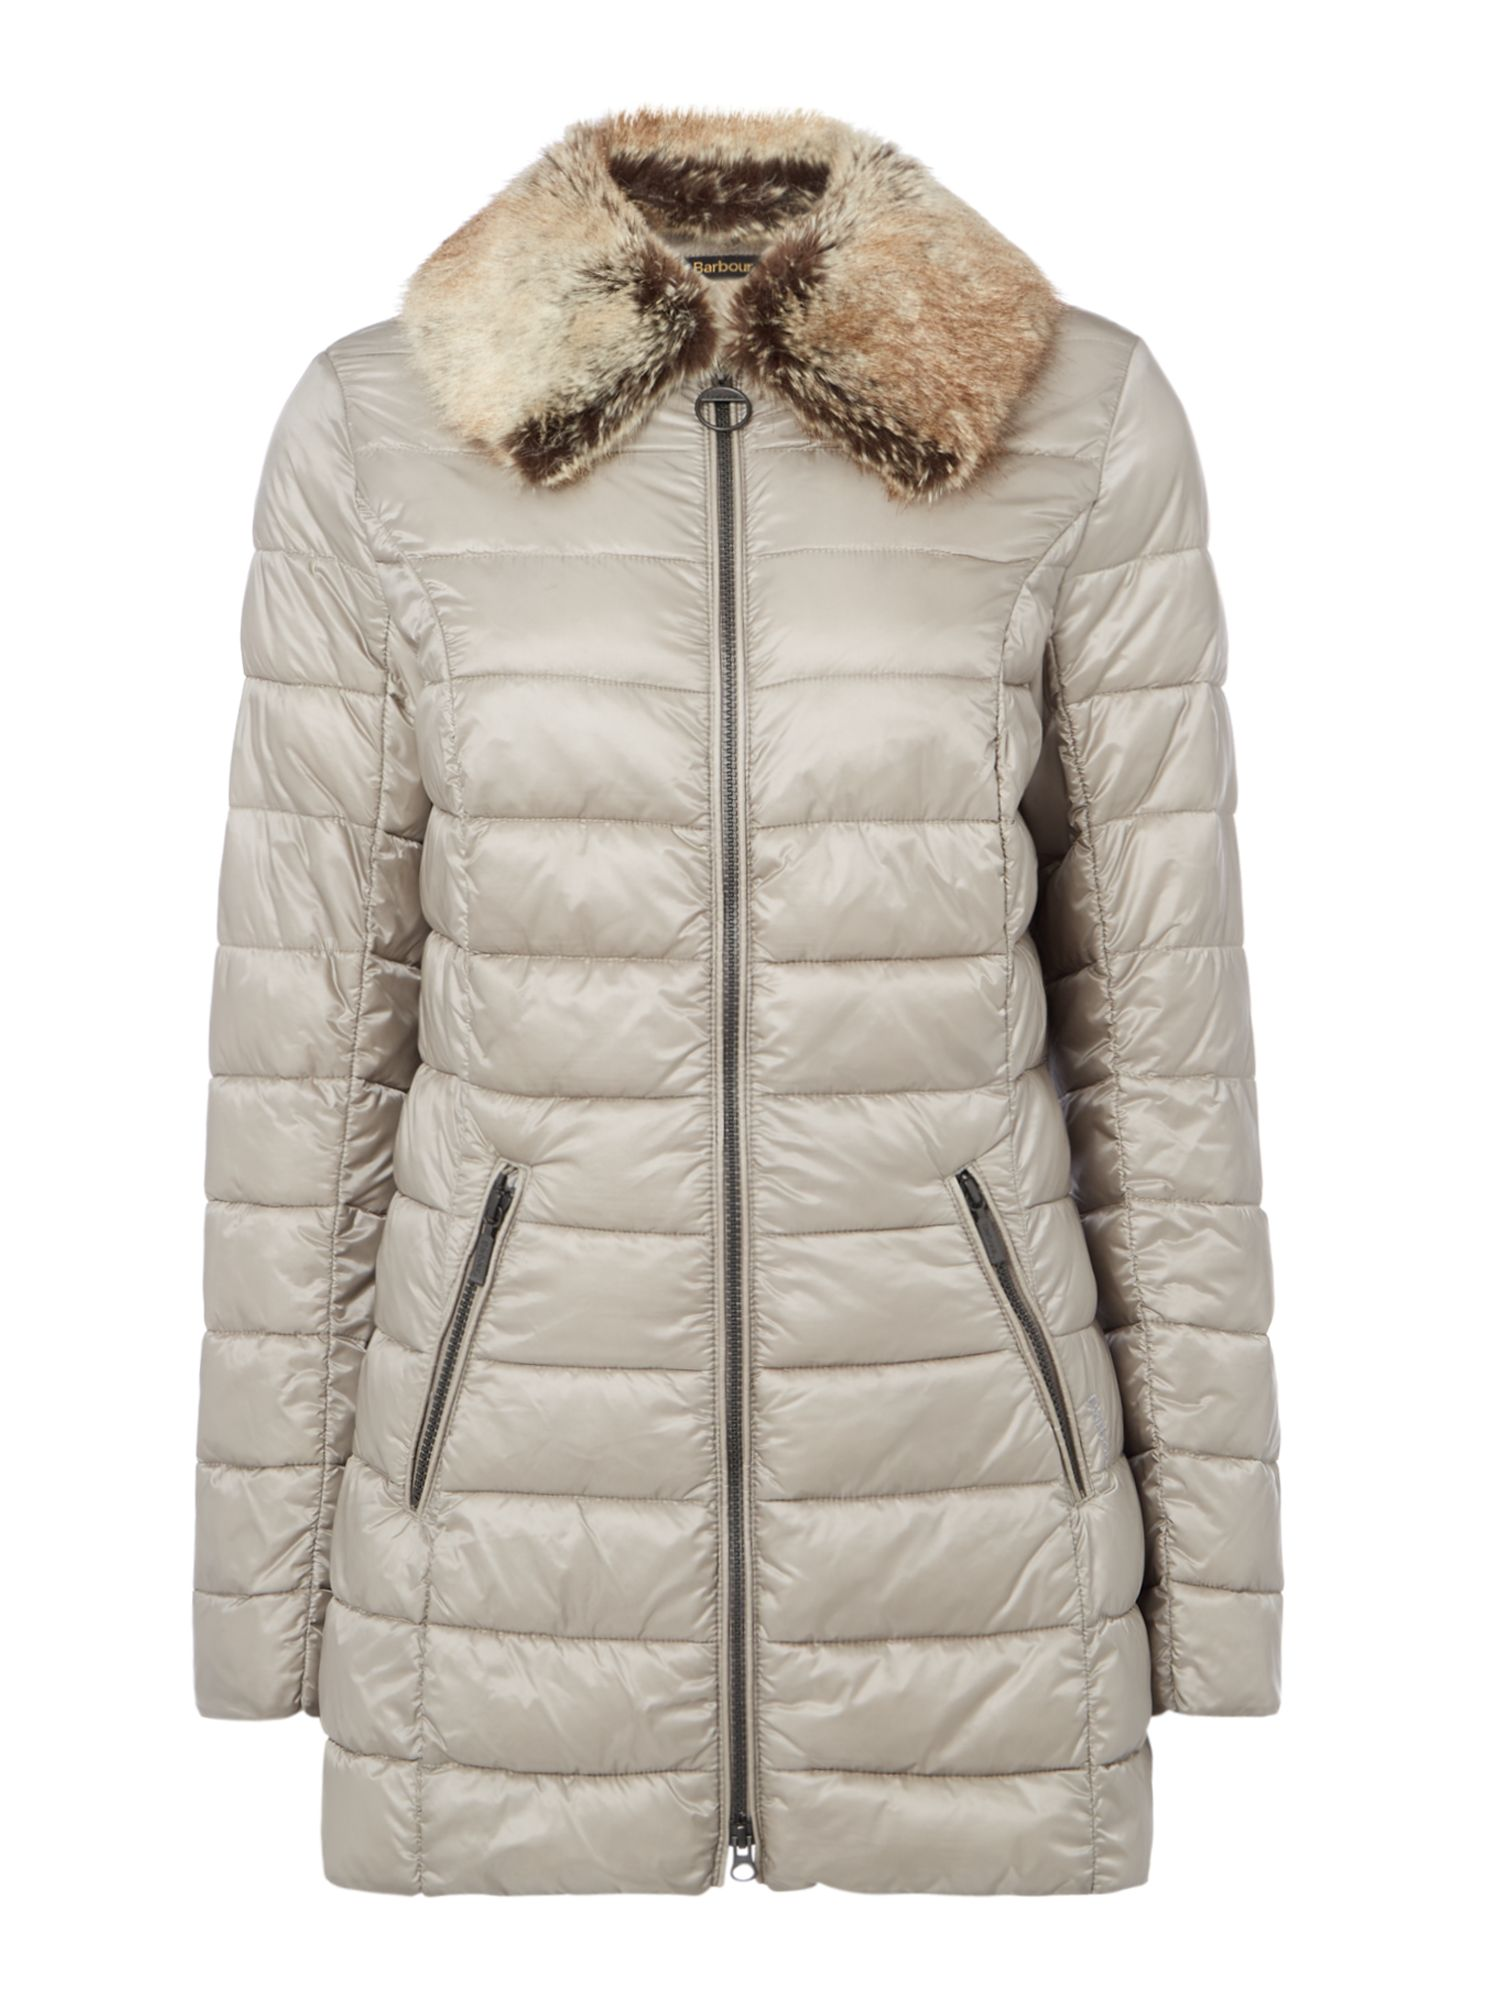 Barbour Munro Quilted Jacket With Faux Fur Collar, Taupe